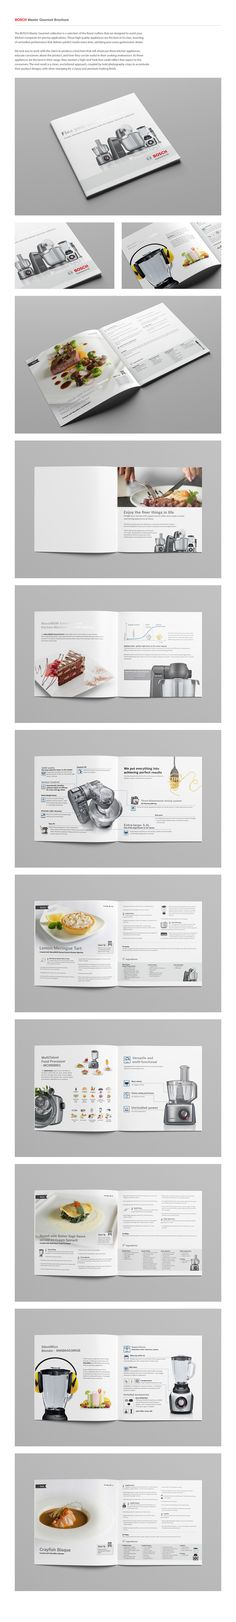 BOSCH: Master Gourmet Brochure on Behance